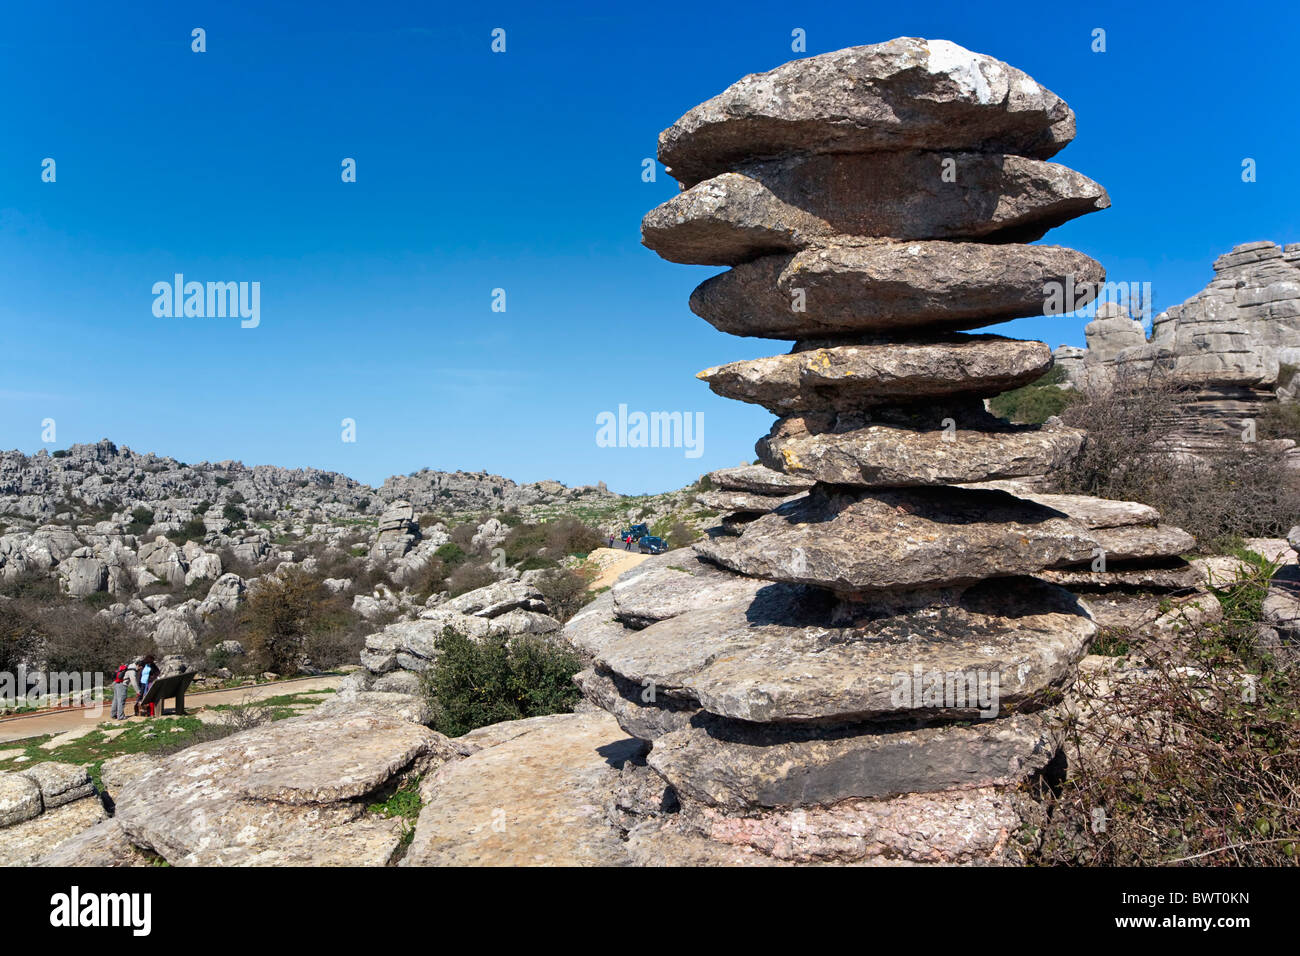 Rock formation known as El Tornillo, or the Screw in El Torcal Park Nature Reserve near Antequera, Malaga Province, - Stock Image